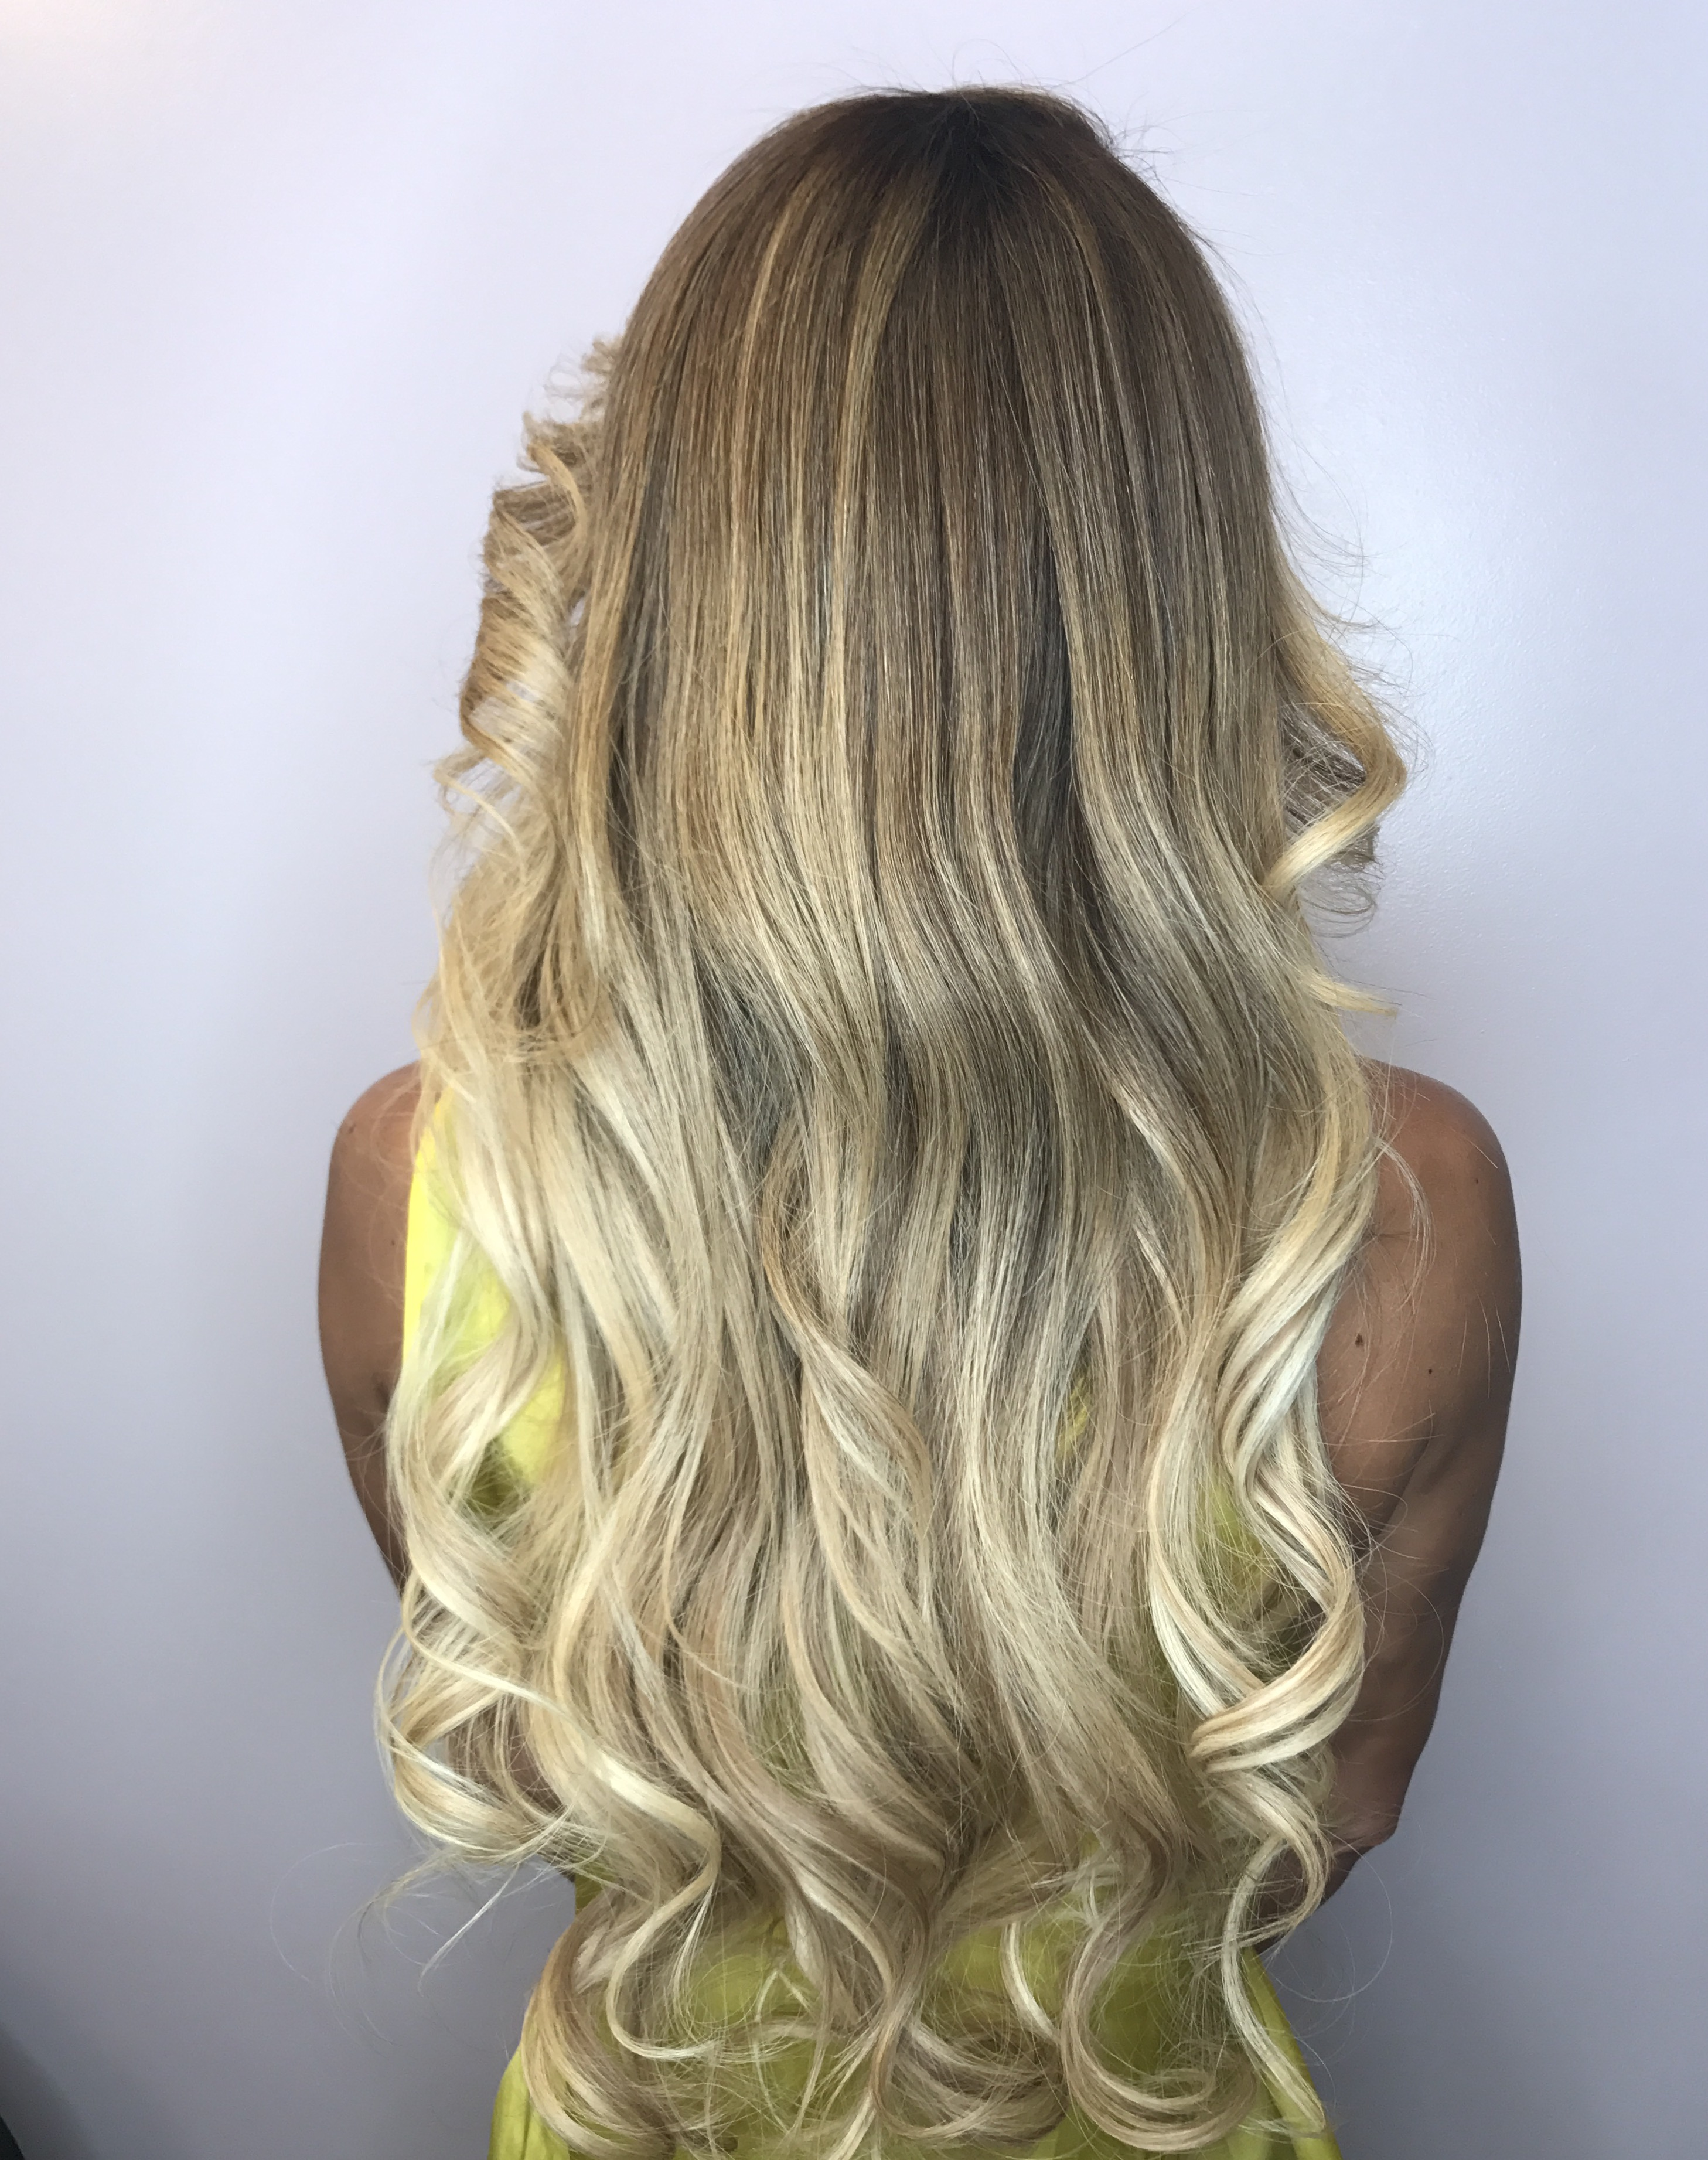 Long Hair Extensions Guide Hair Extensions Best Hair Extensions